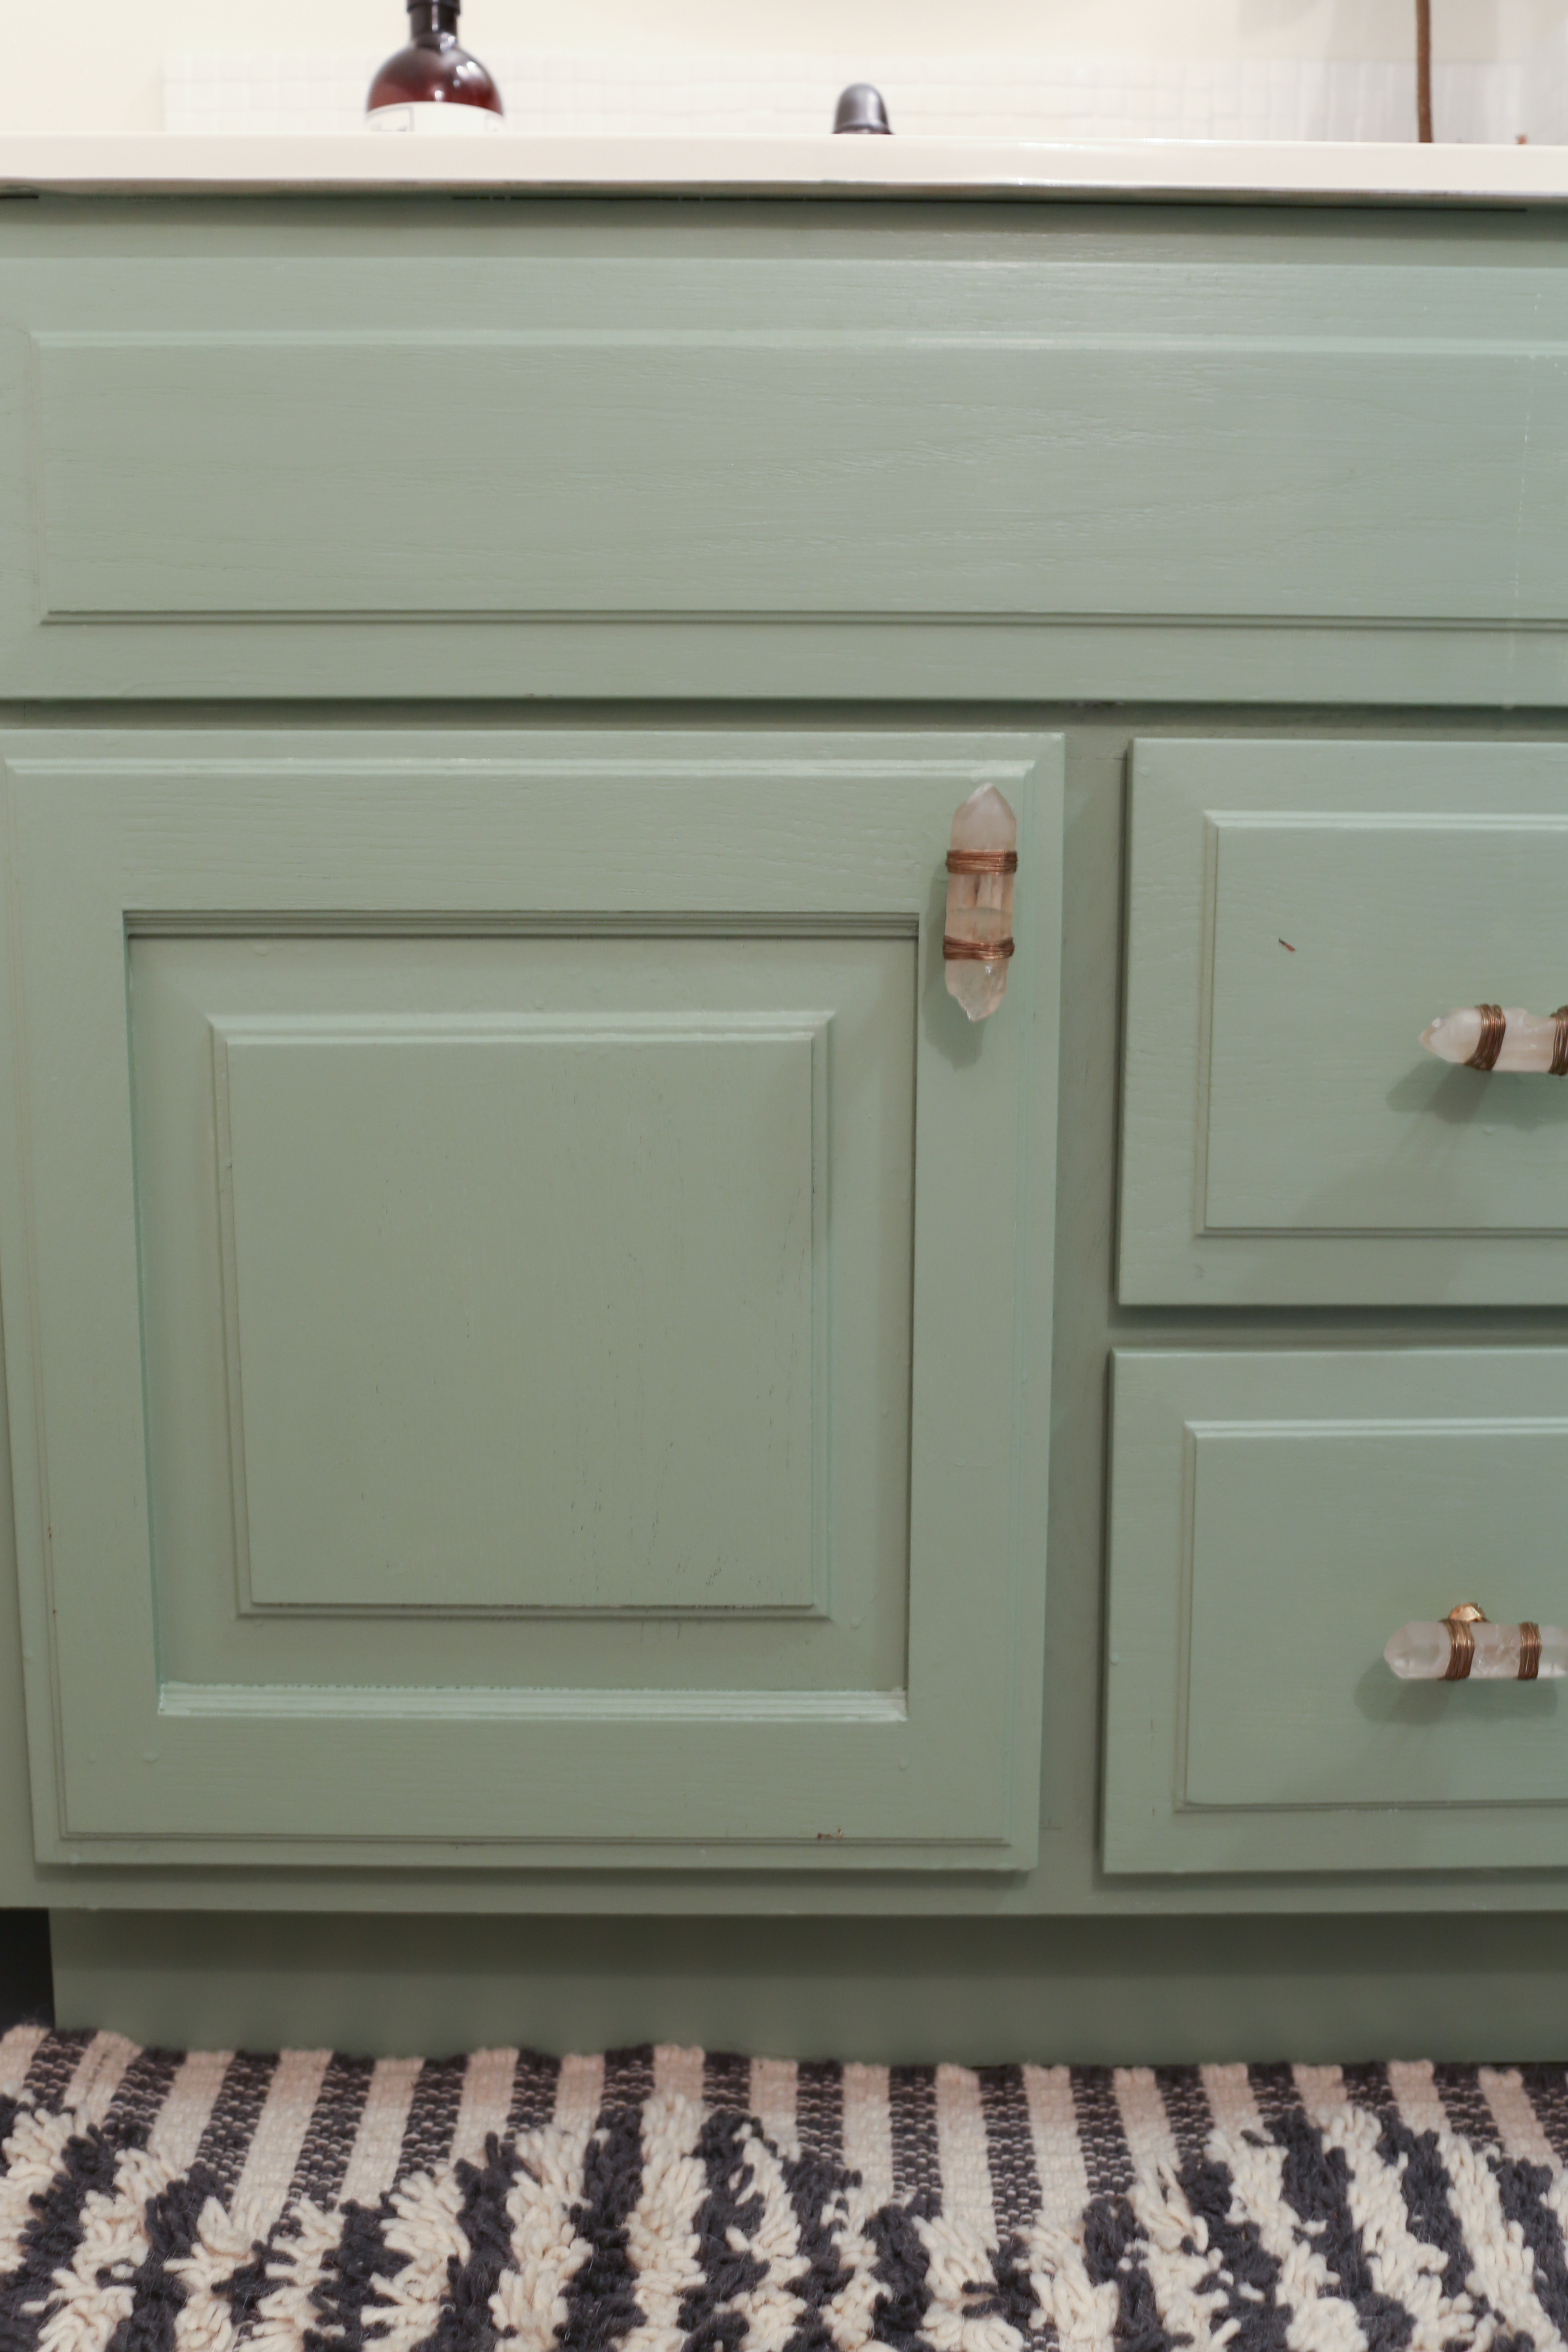 The bathroom cabinet is repainted green and basic knobs are updated with quarts cabinet pulls.